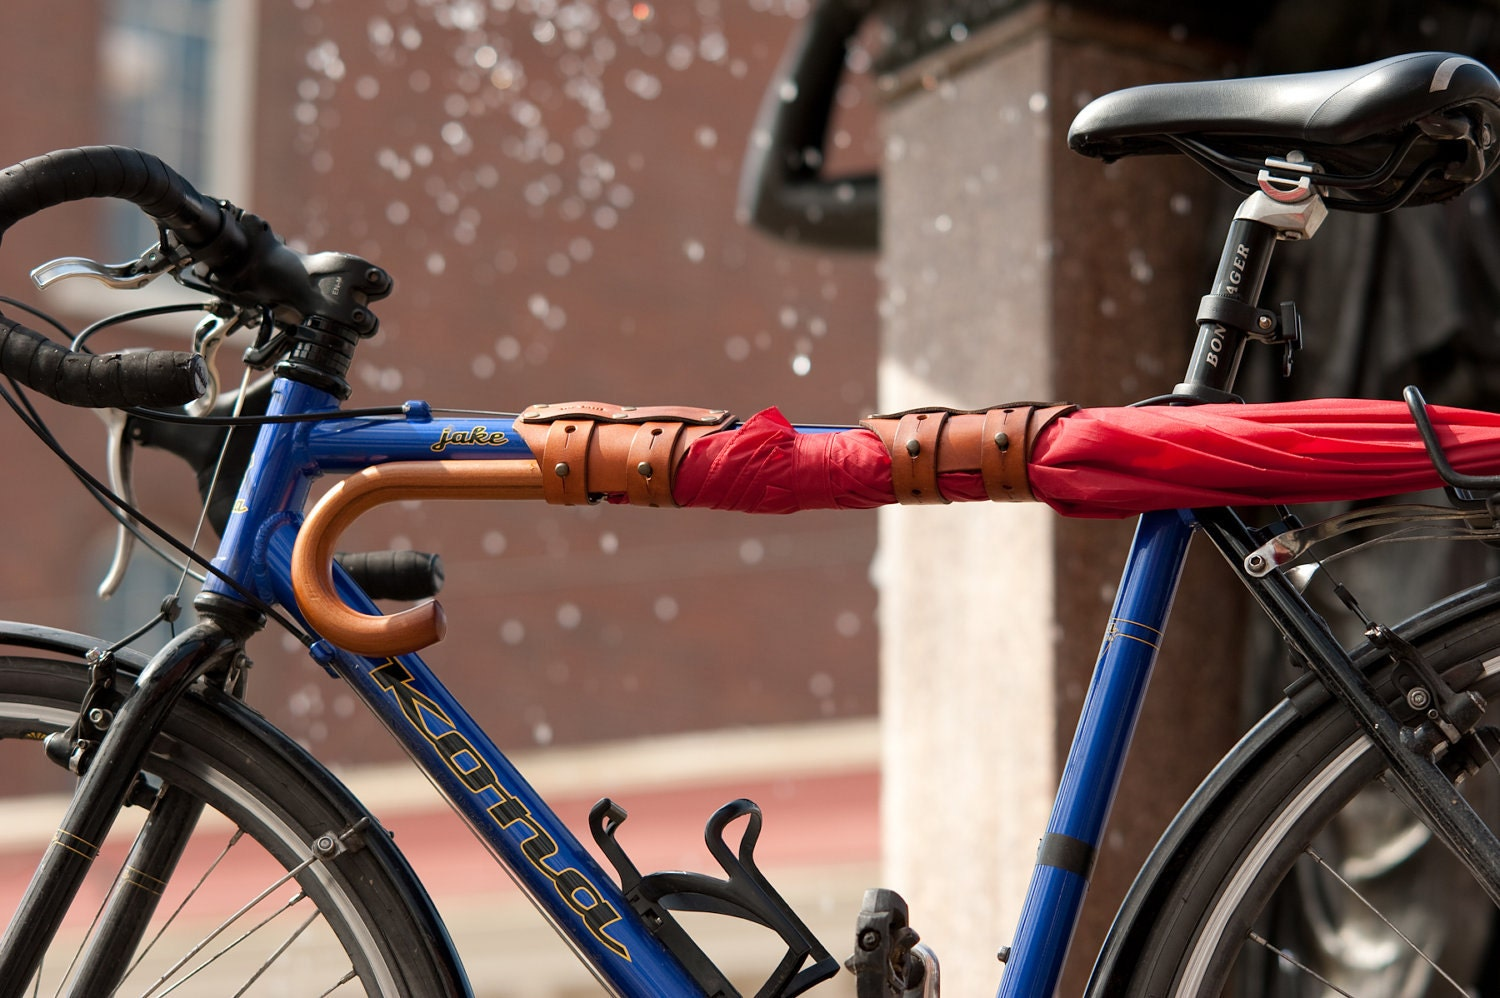 bicycle leather cinch to hold umbrellas and 6 packs of soda or beer